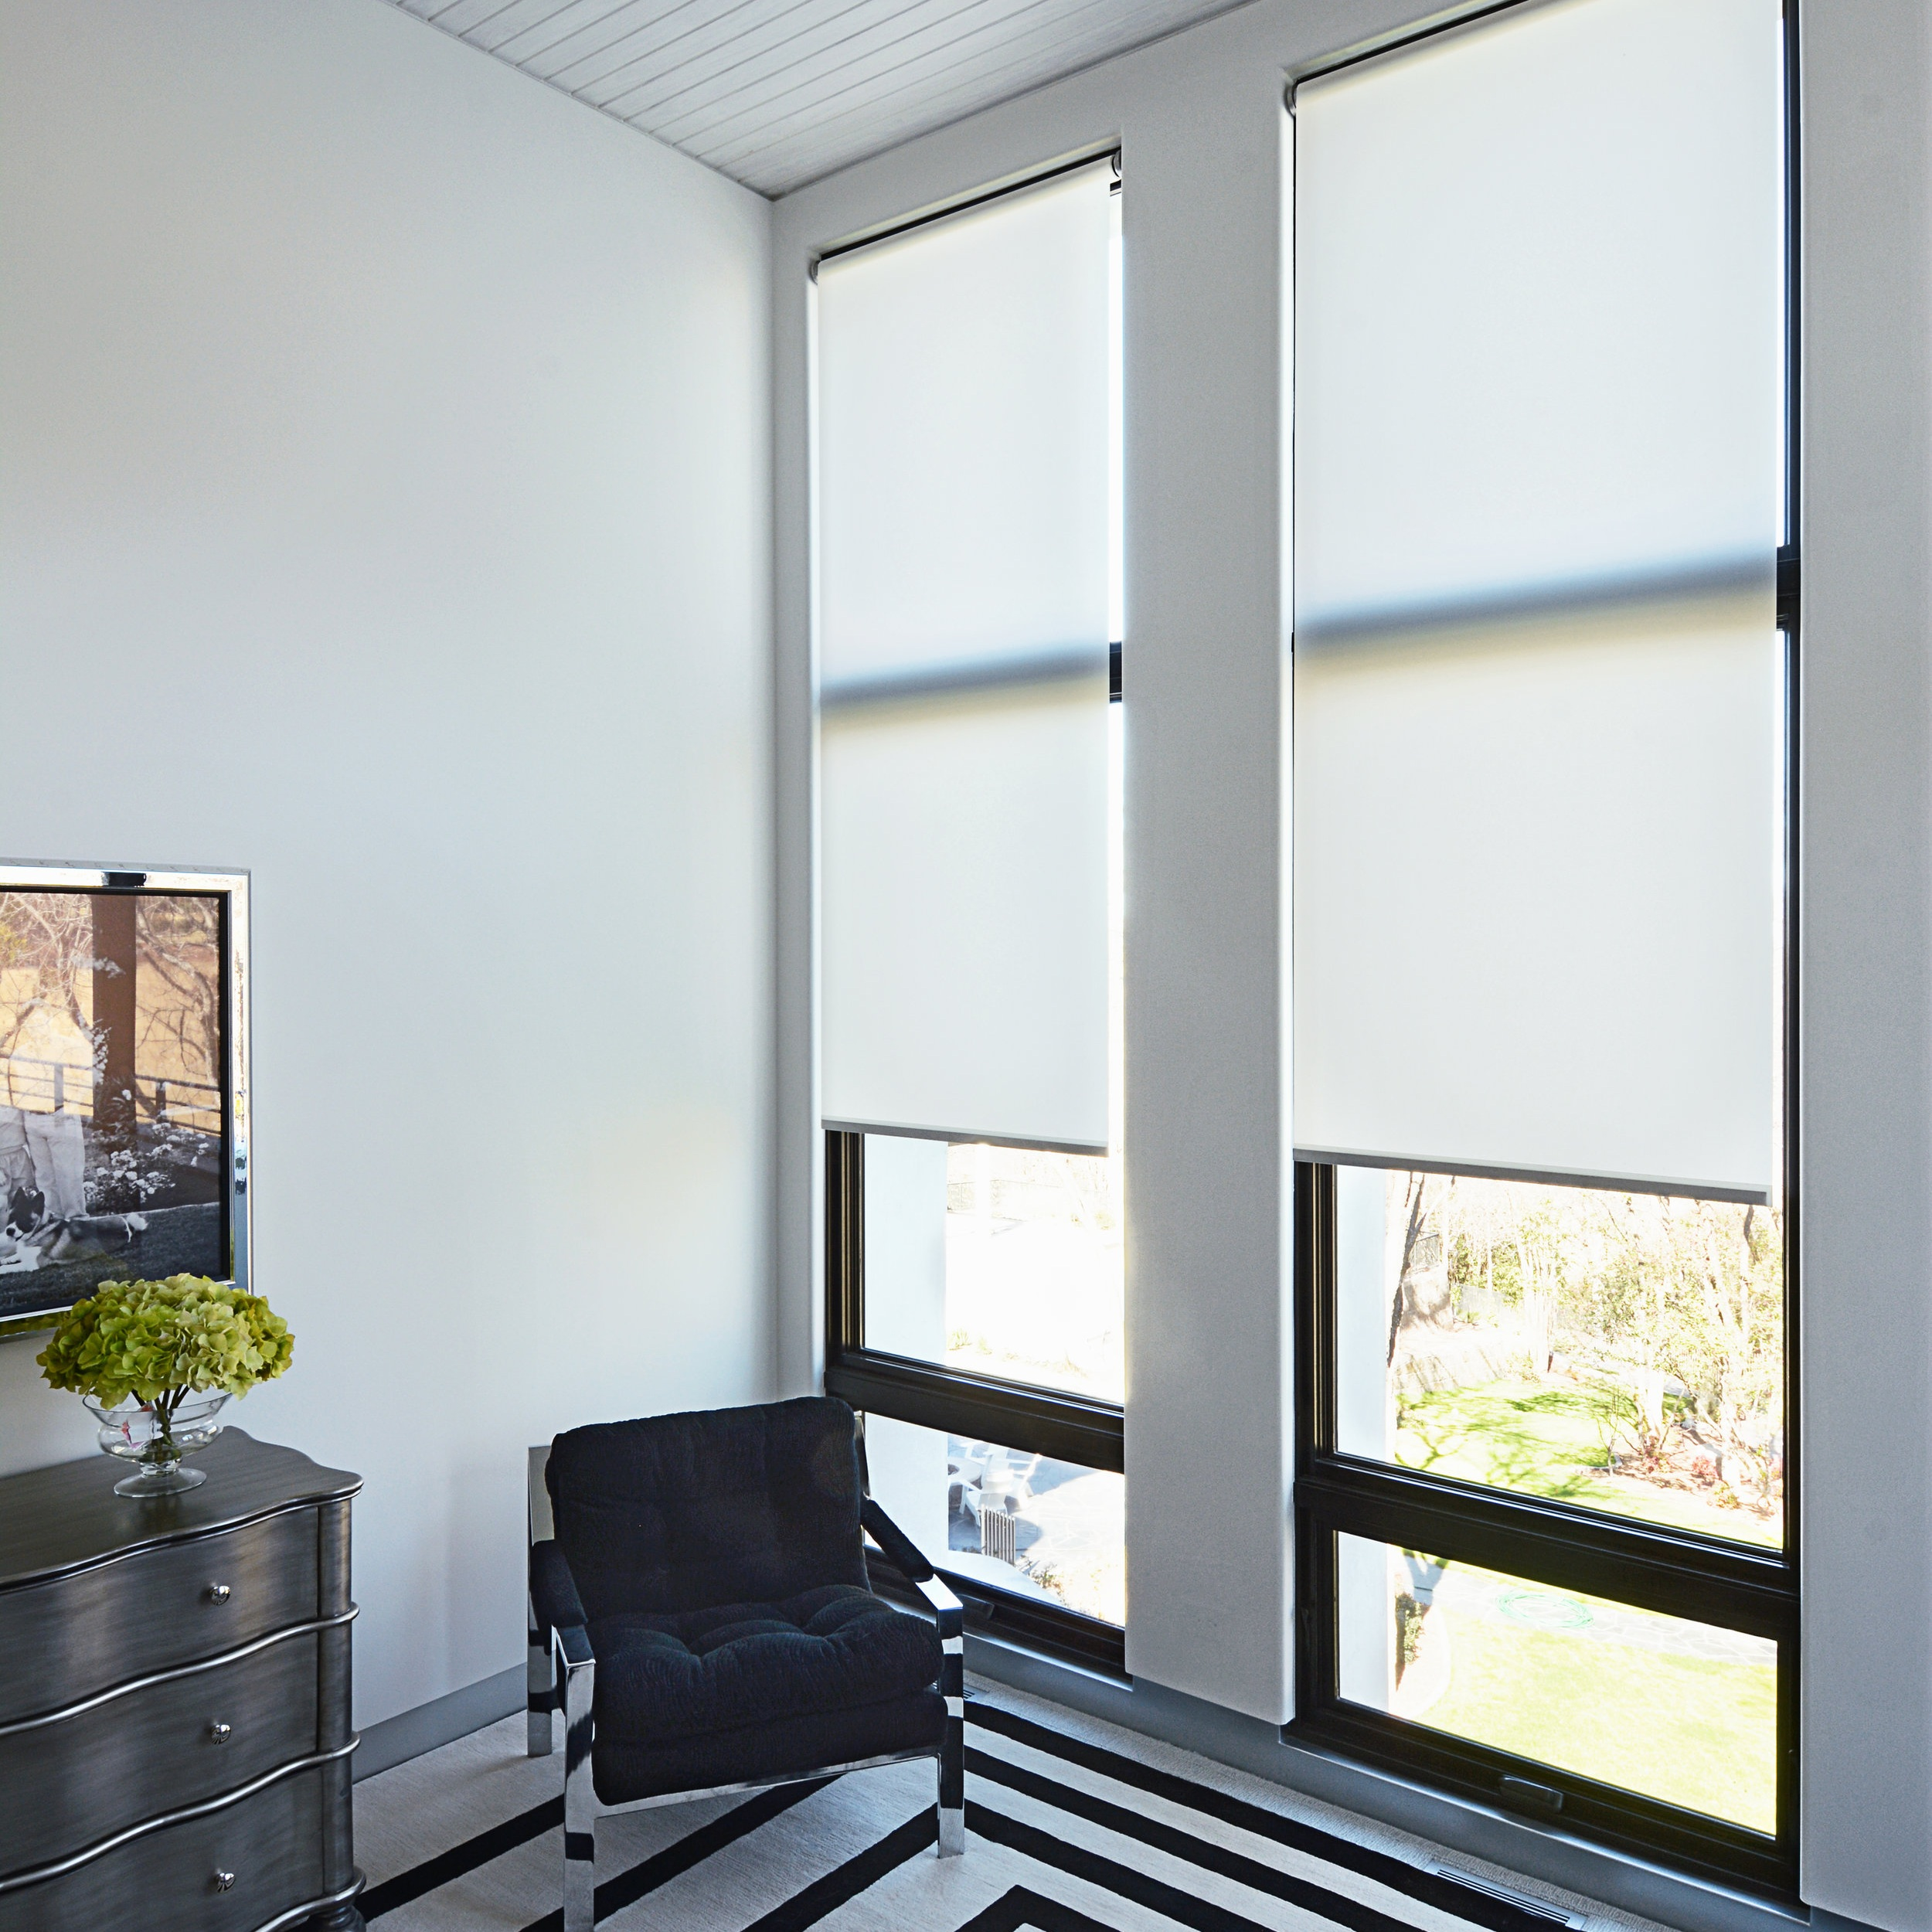 Translucent fabric obscures visibility. This option is suitable for spaces that require ambient lighting, UV protection, and privacy. -